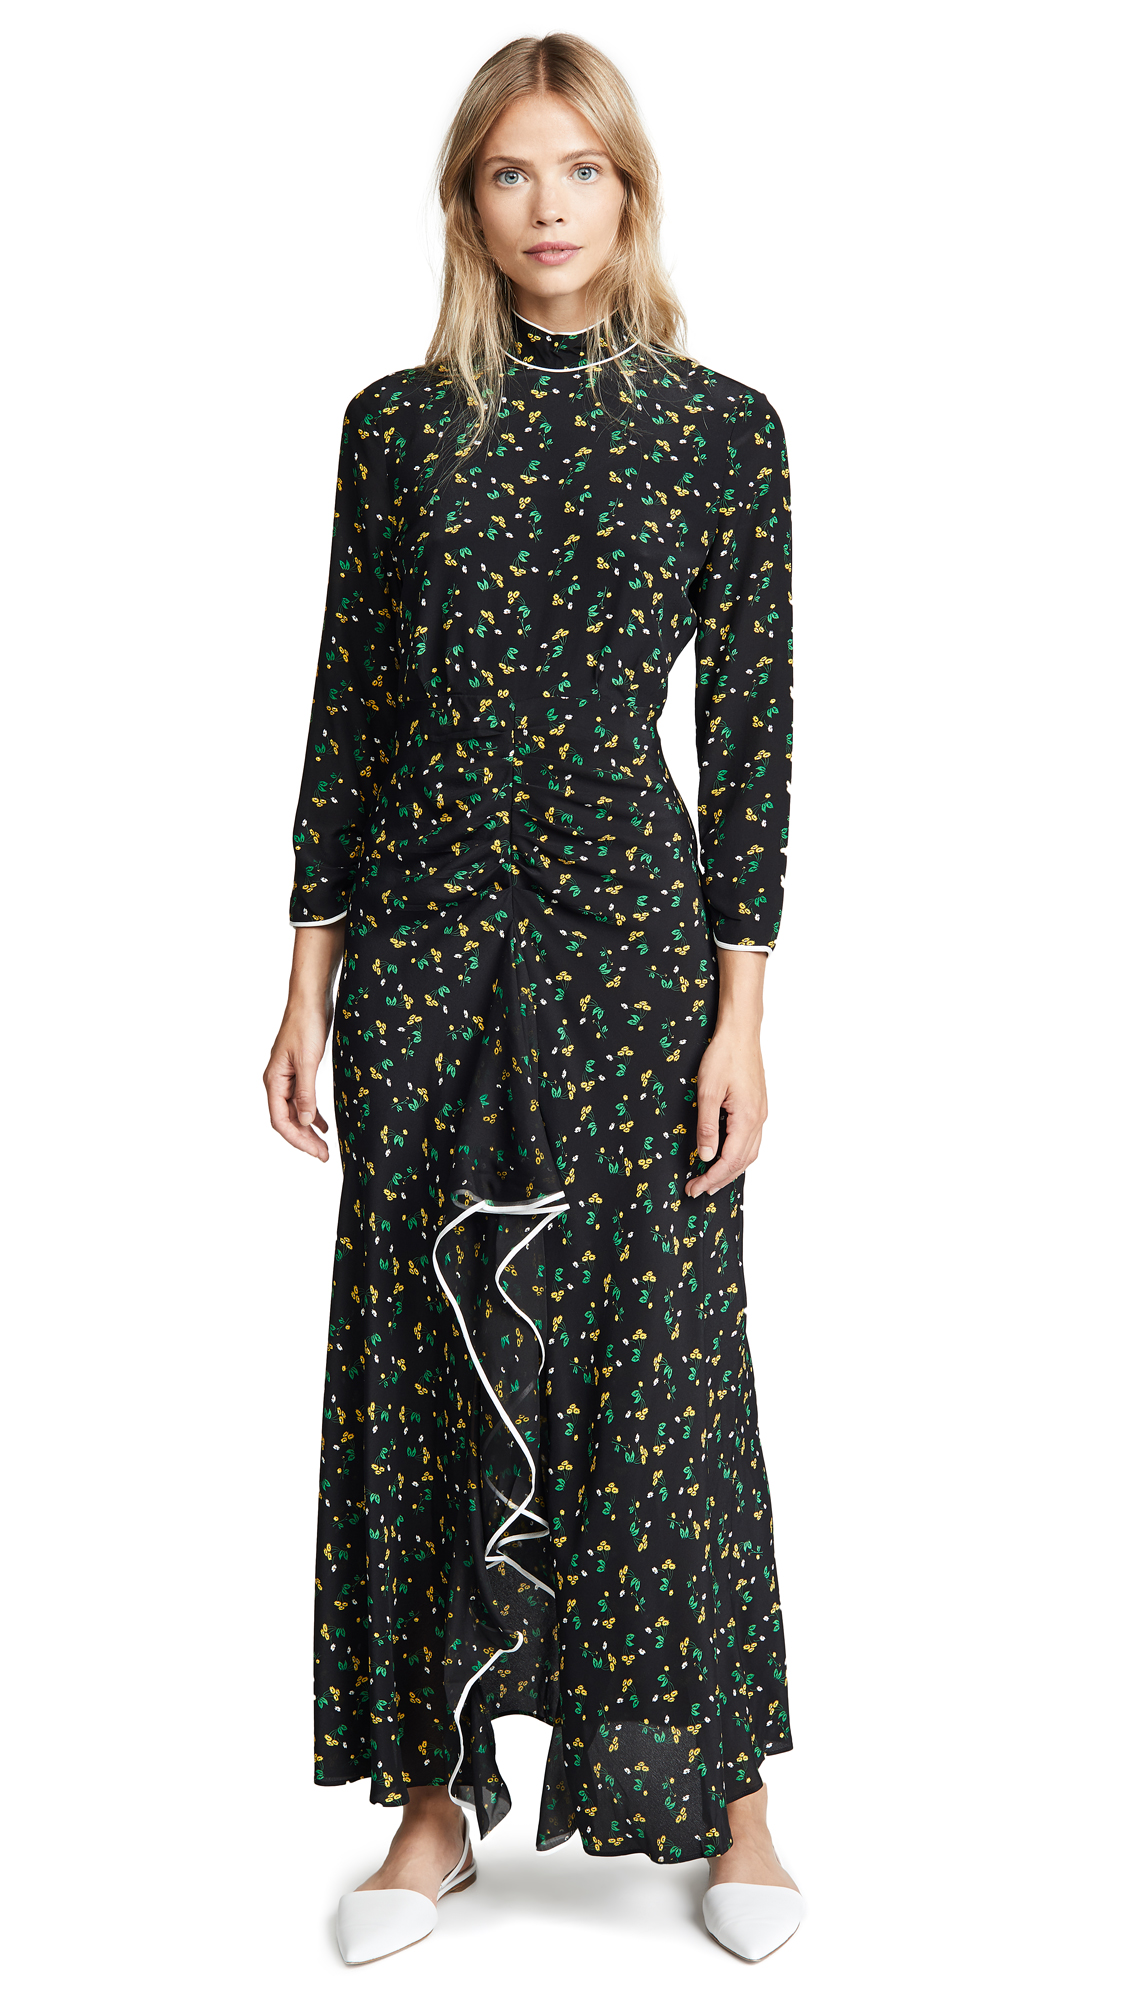 RIXO London Lucy Dress In Bunched Daisy Black Yellow